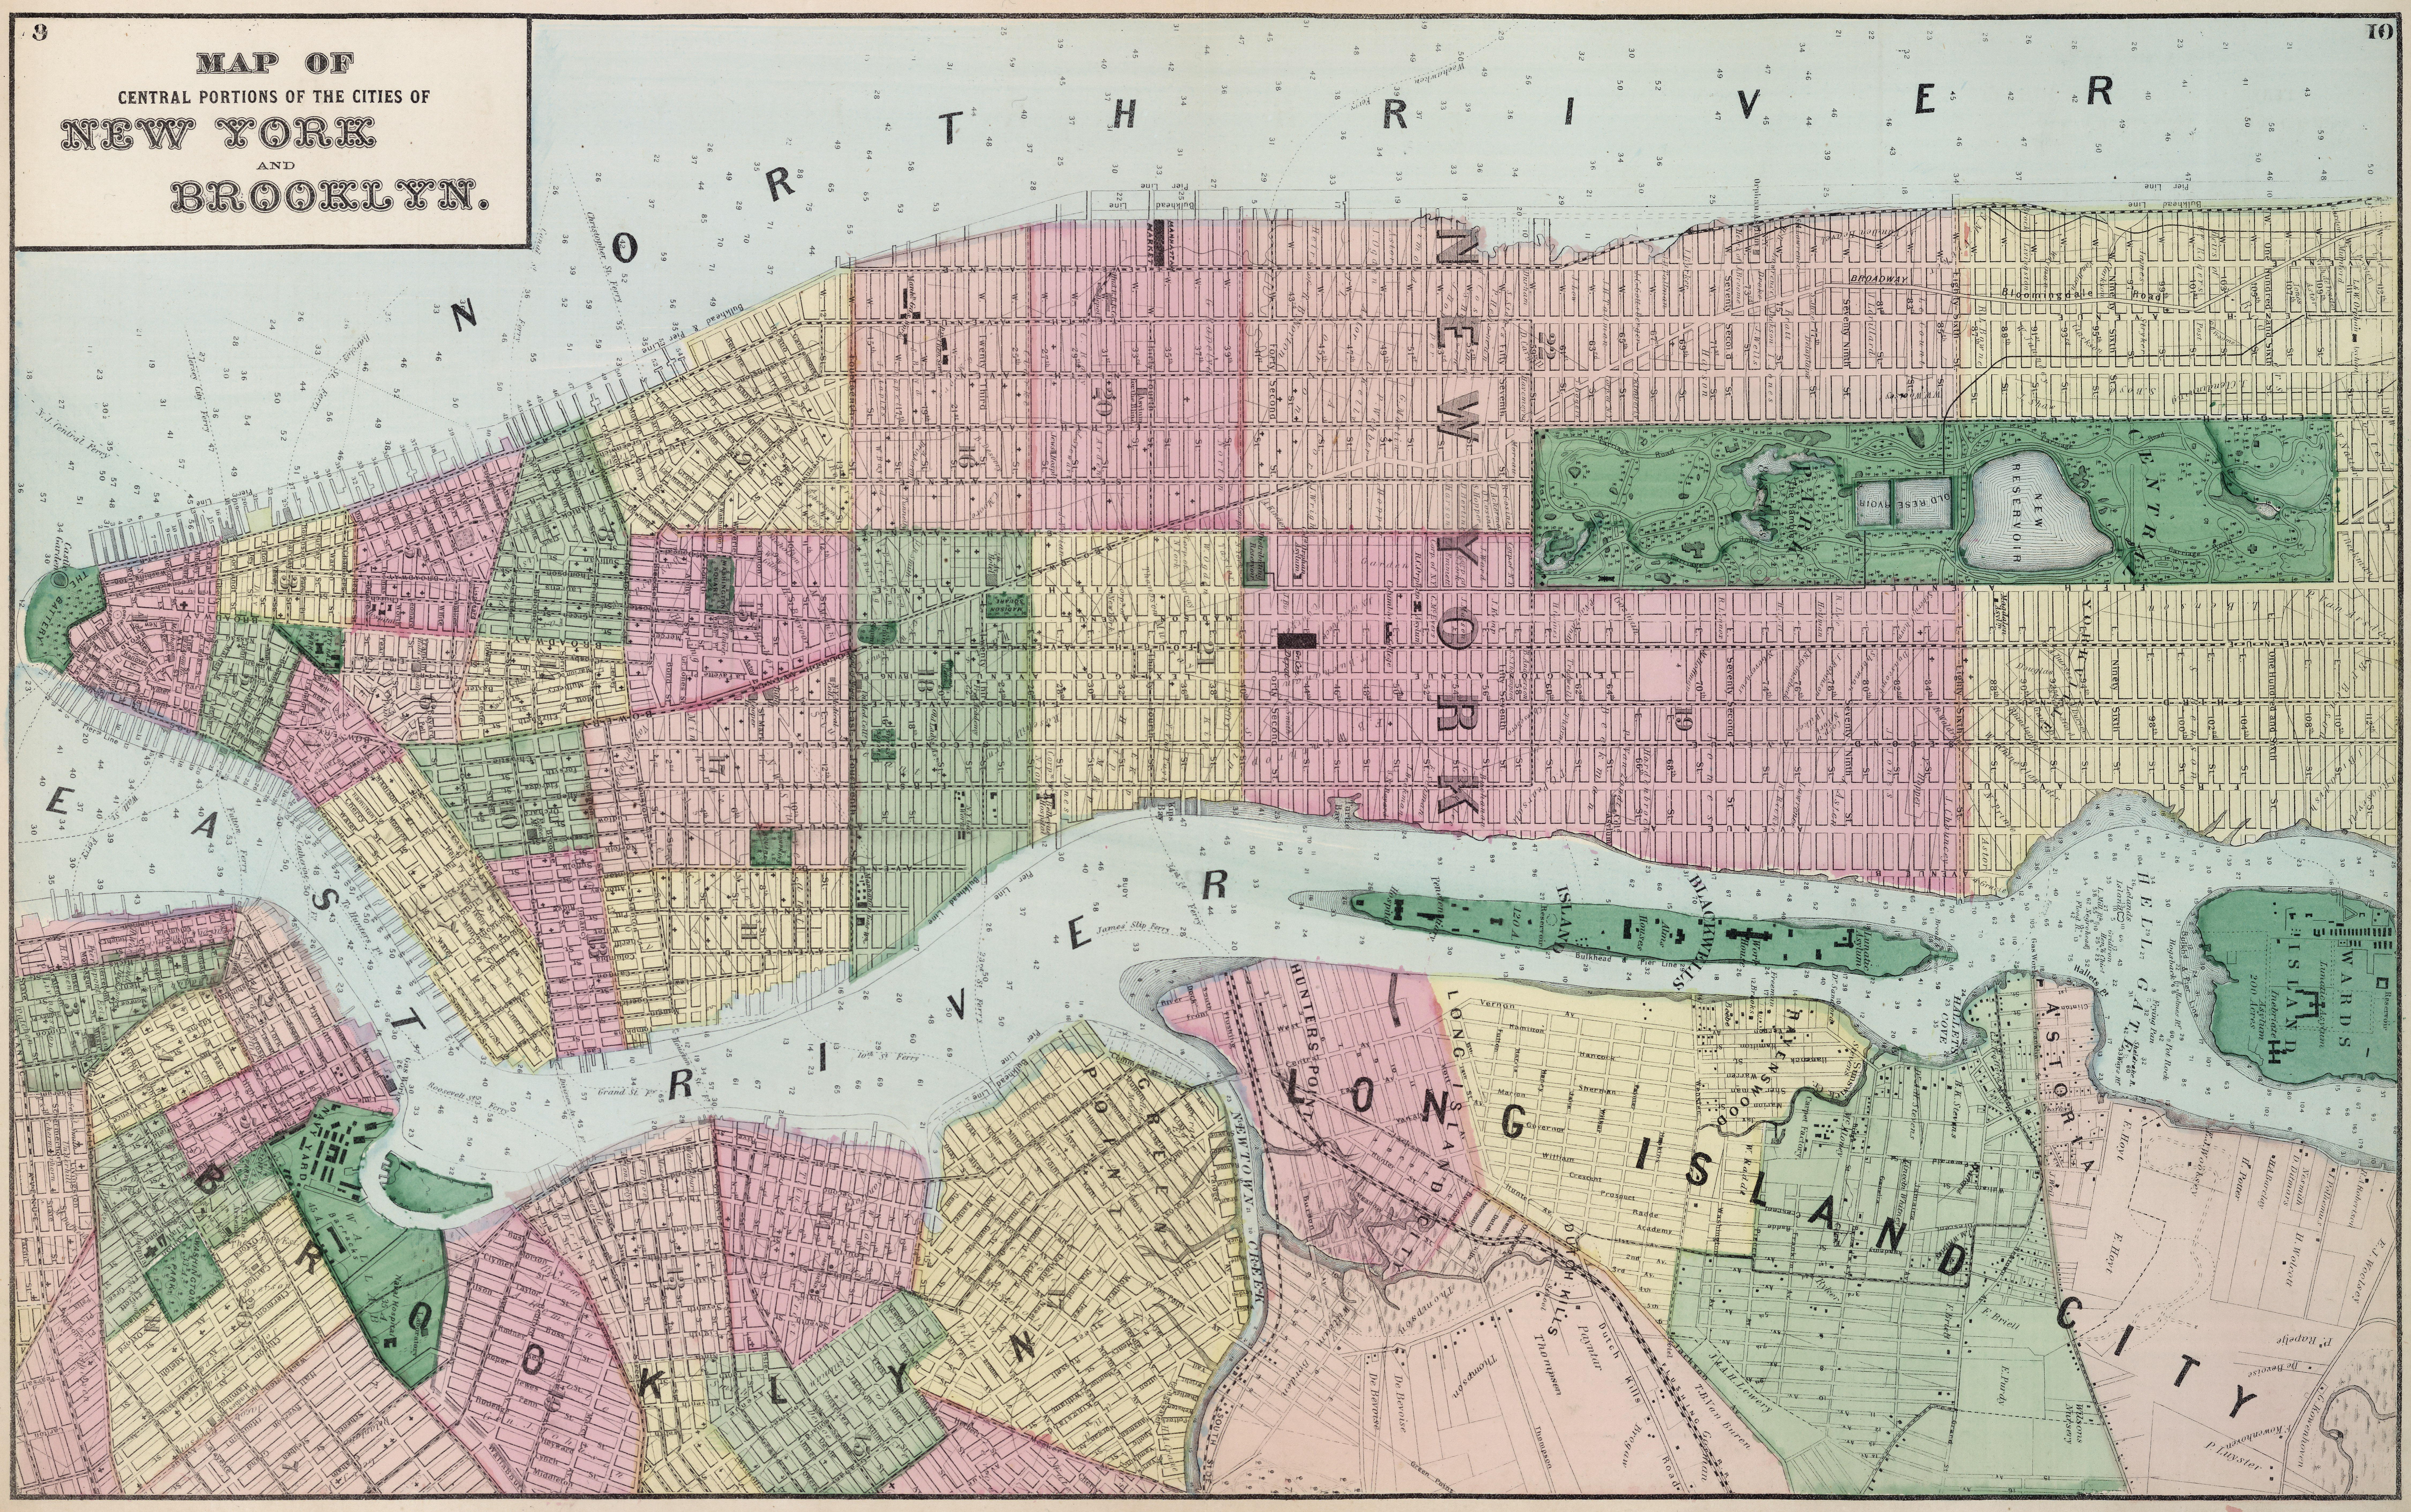 Beers street map of New York City 1873 – Street Maps of New York City